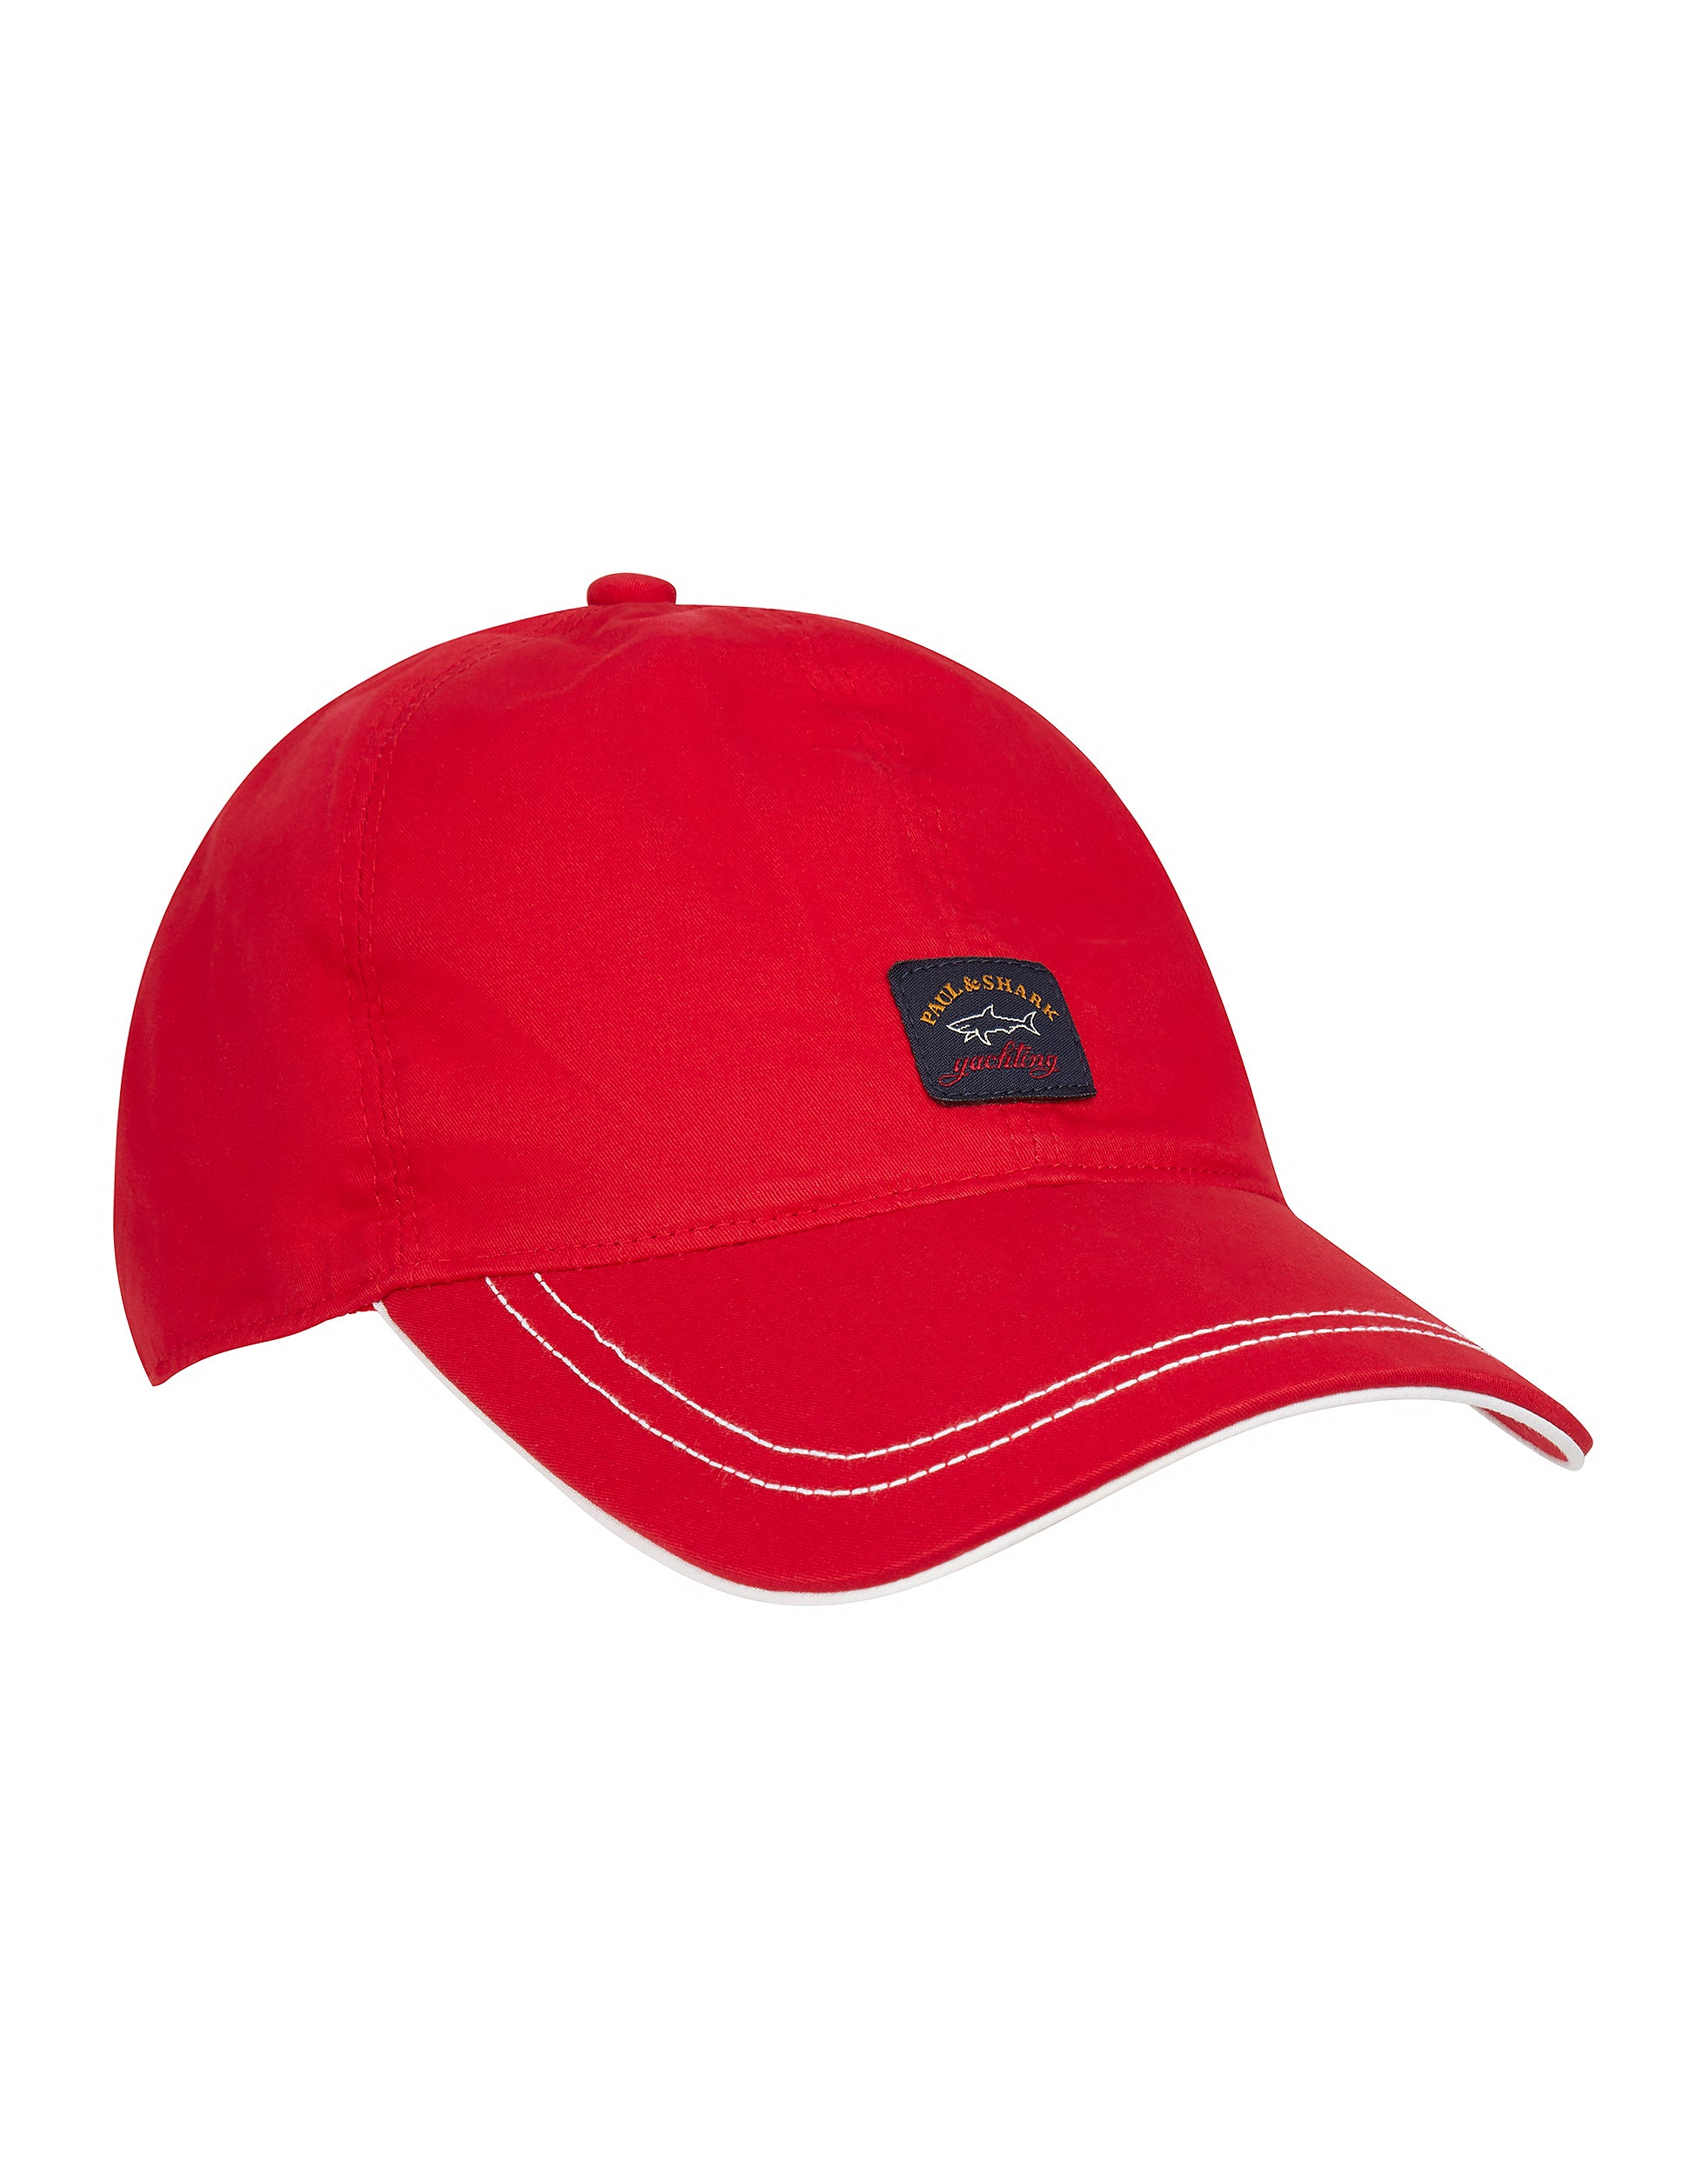 29c6e32ed55 Woven Patched Baseball Cap in Red